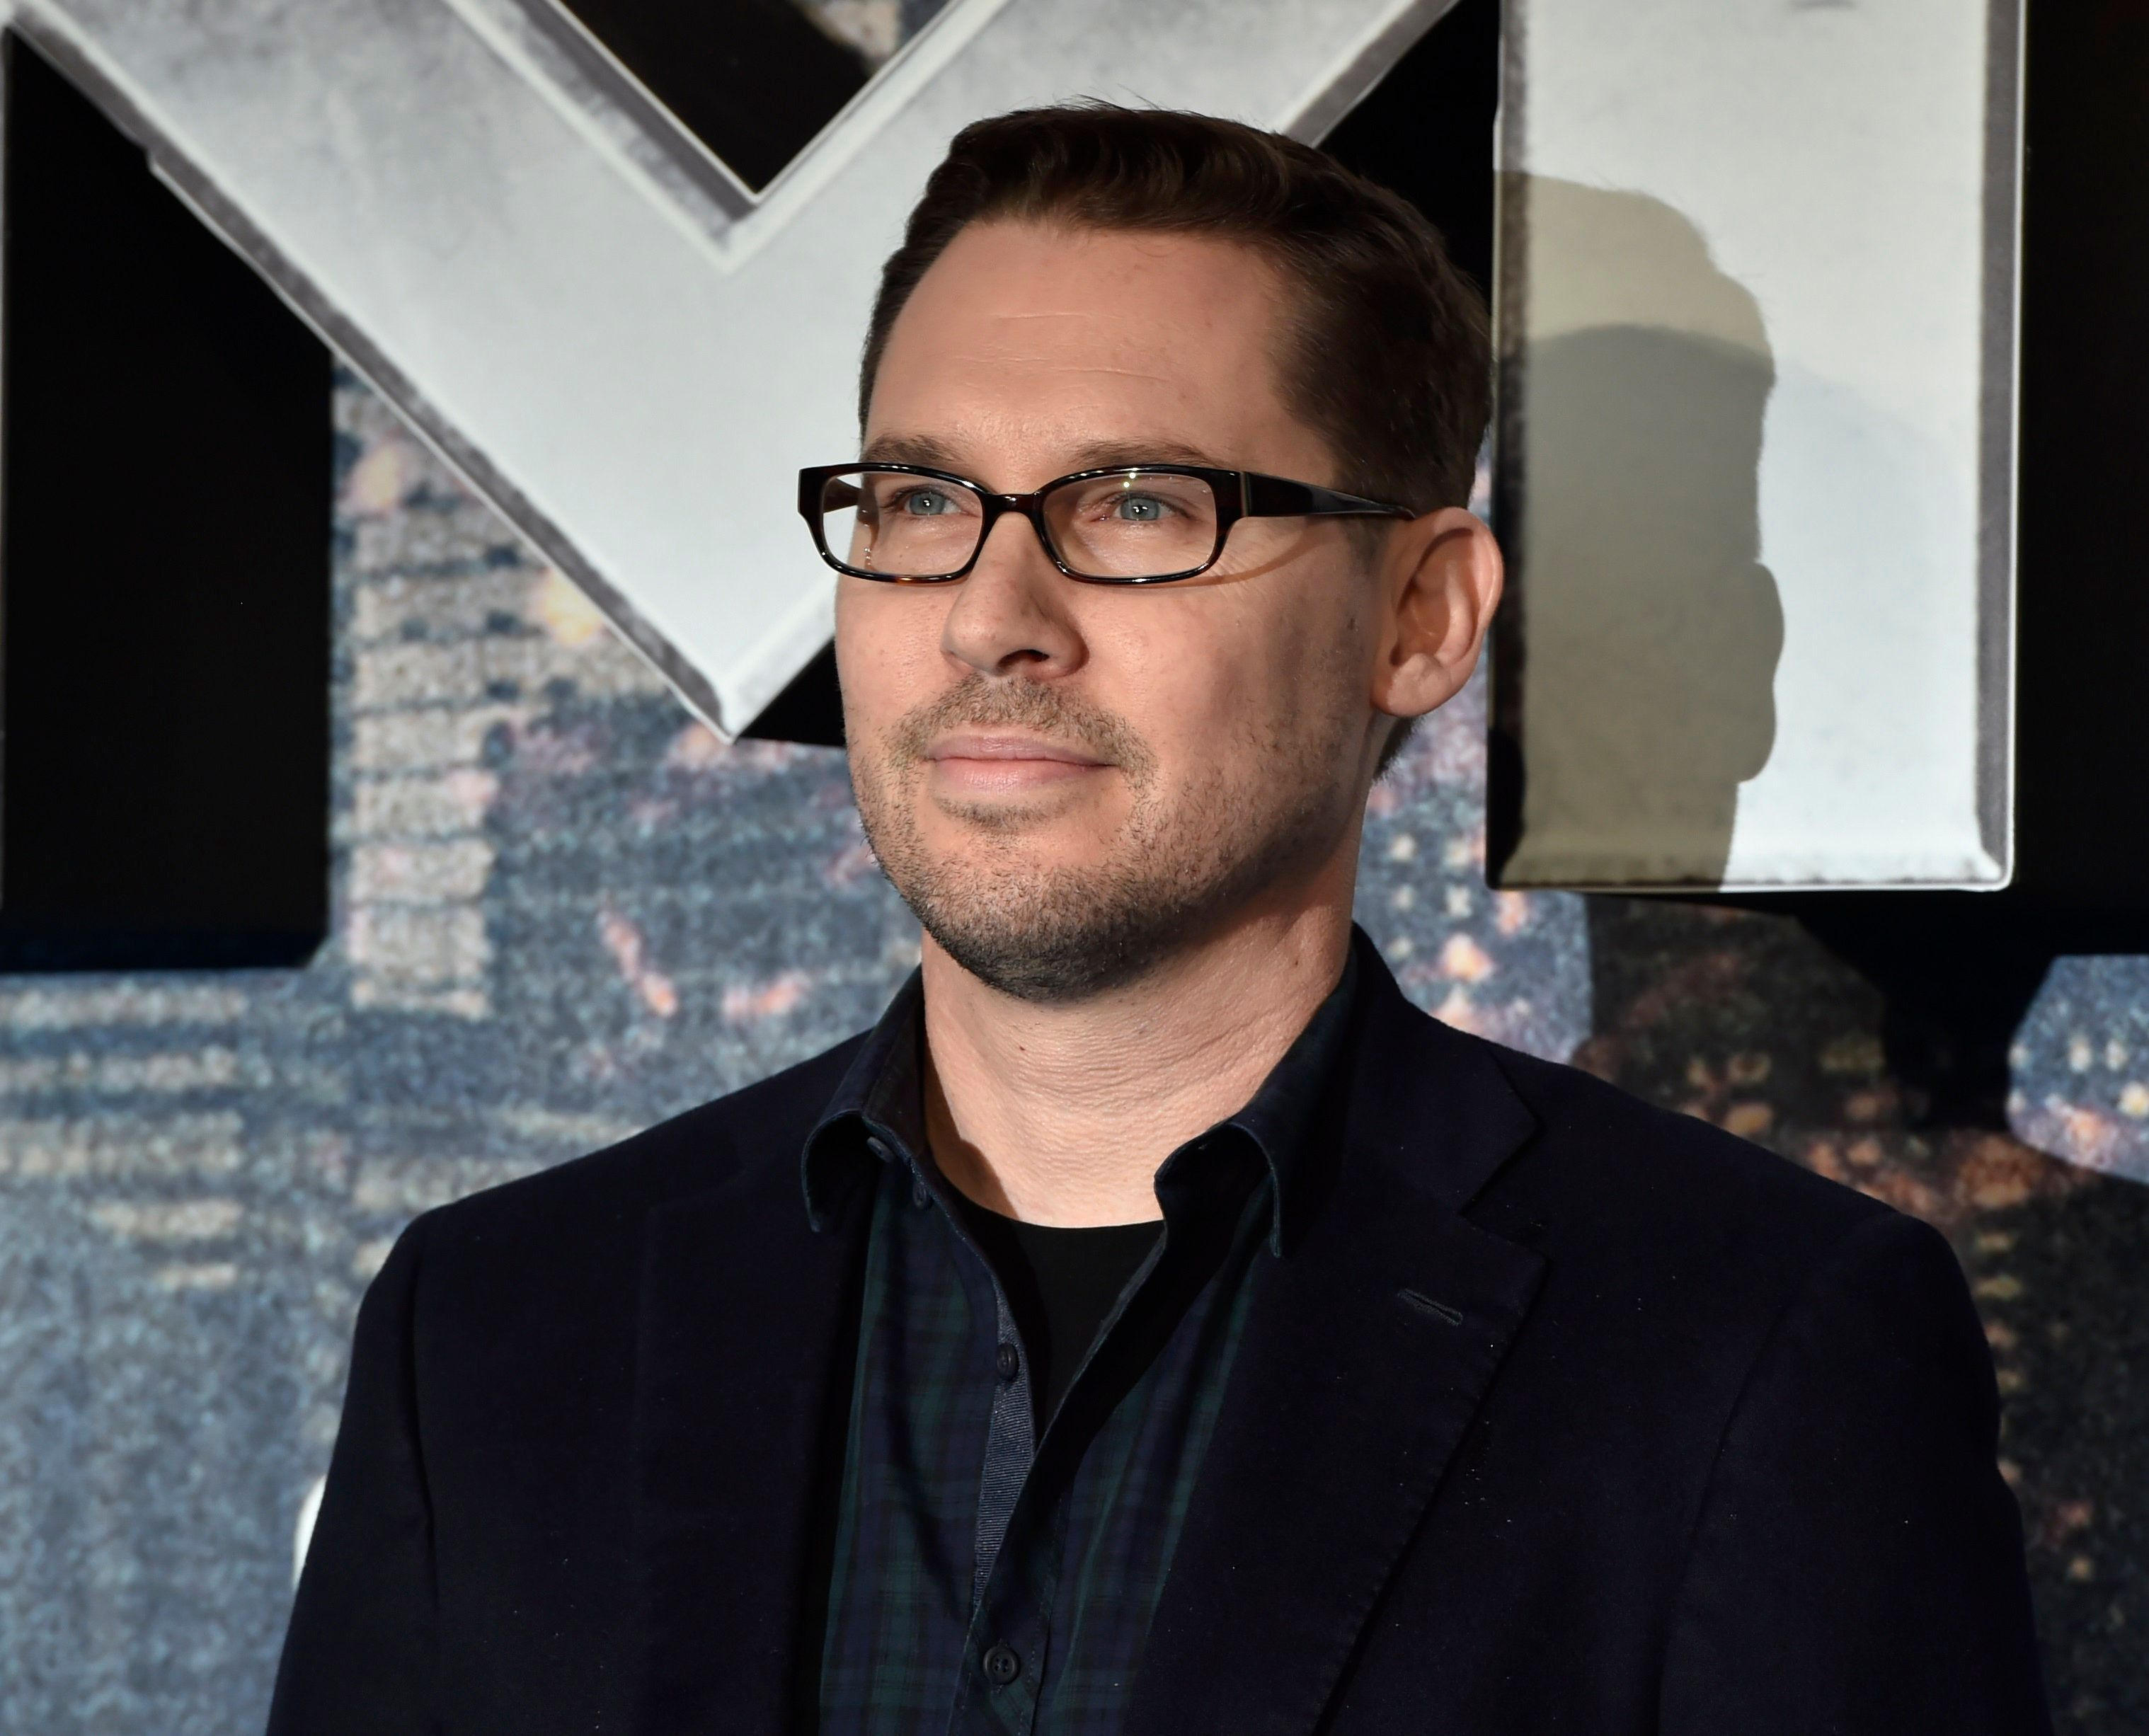 Bryan Singer Accused Of Underage Sex With Boys Again